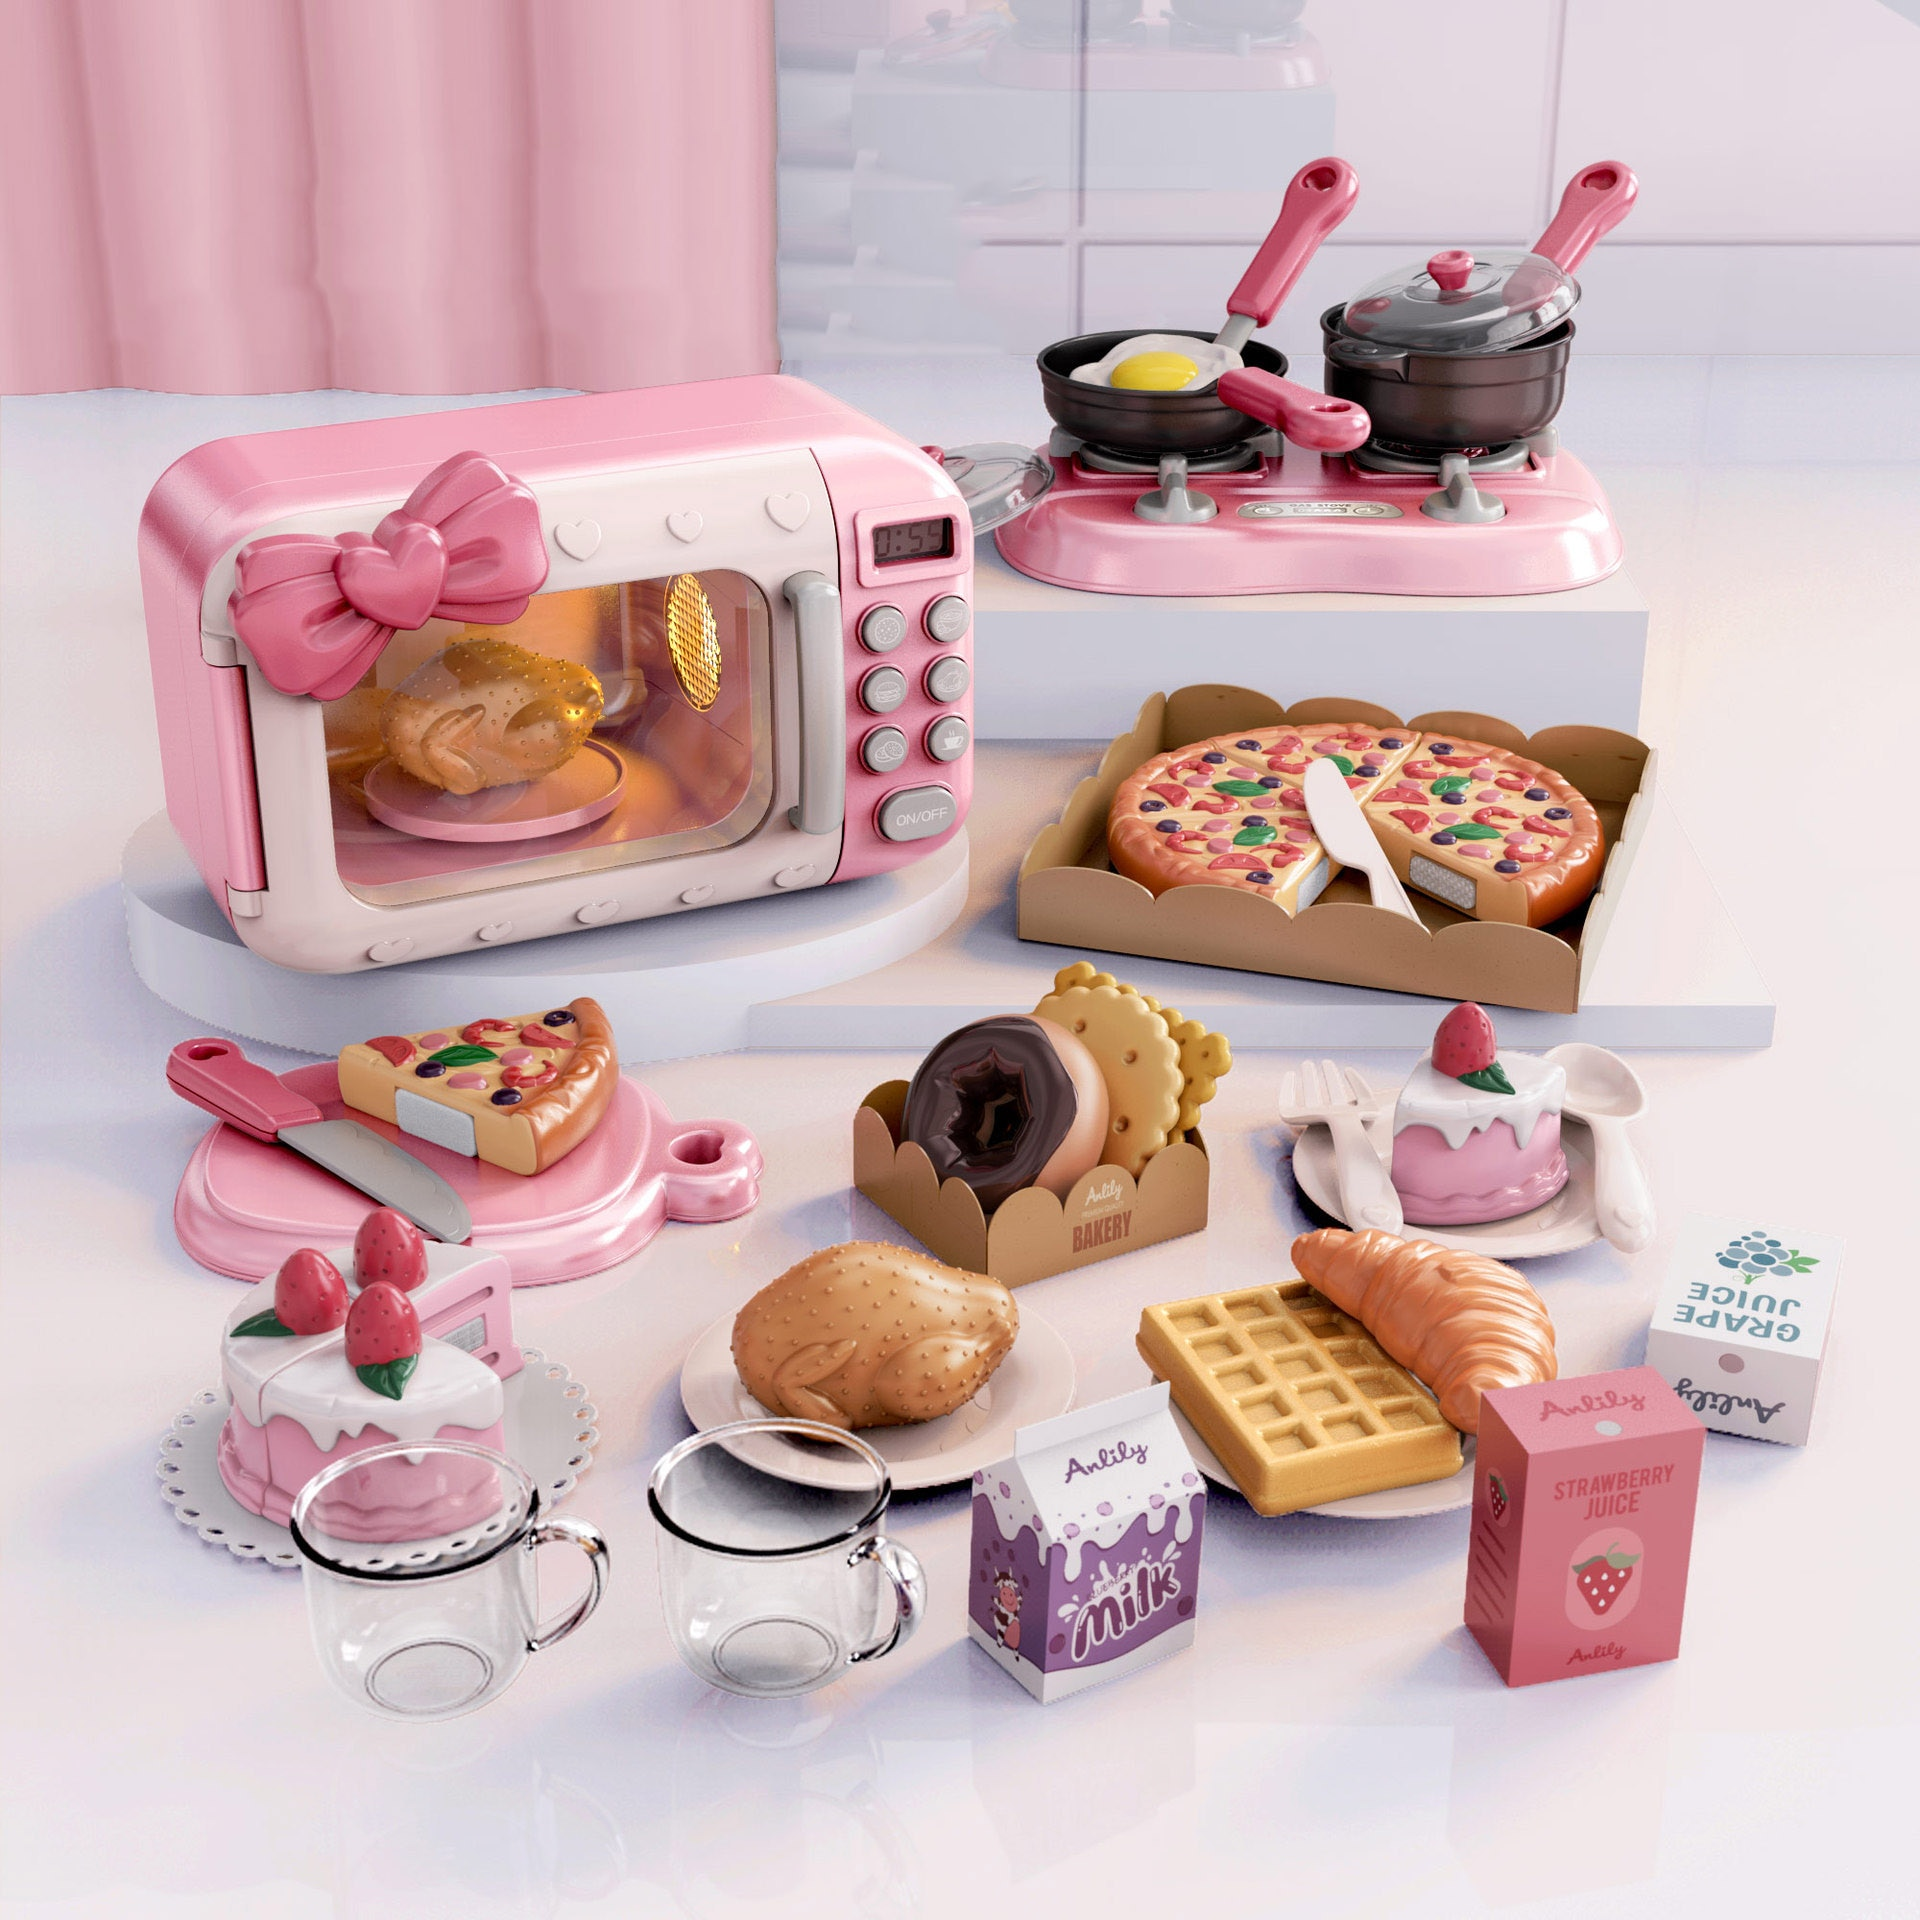 children s toy doll stroller play pretend toy children s toy cart girl play house toy trolley birthday gifts brinquedos juguetes Children Play House Toys Simulation Kitchen Toy Timing Rotary Microwave Oven Cooking Pretend Toy Set Kids Gifts